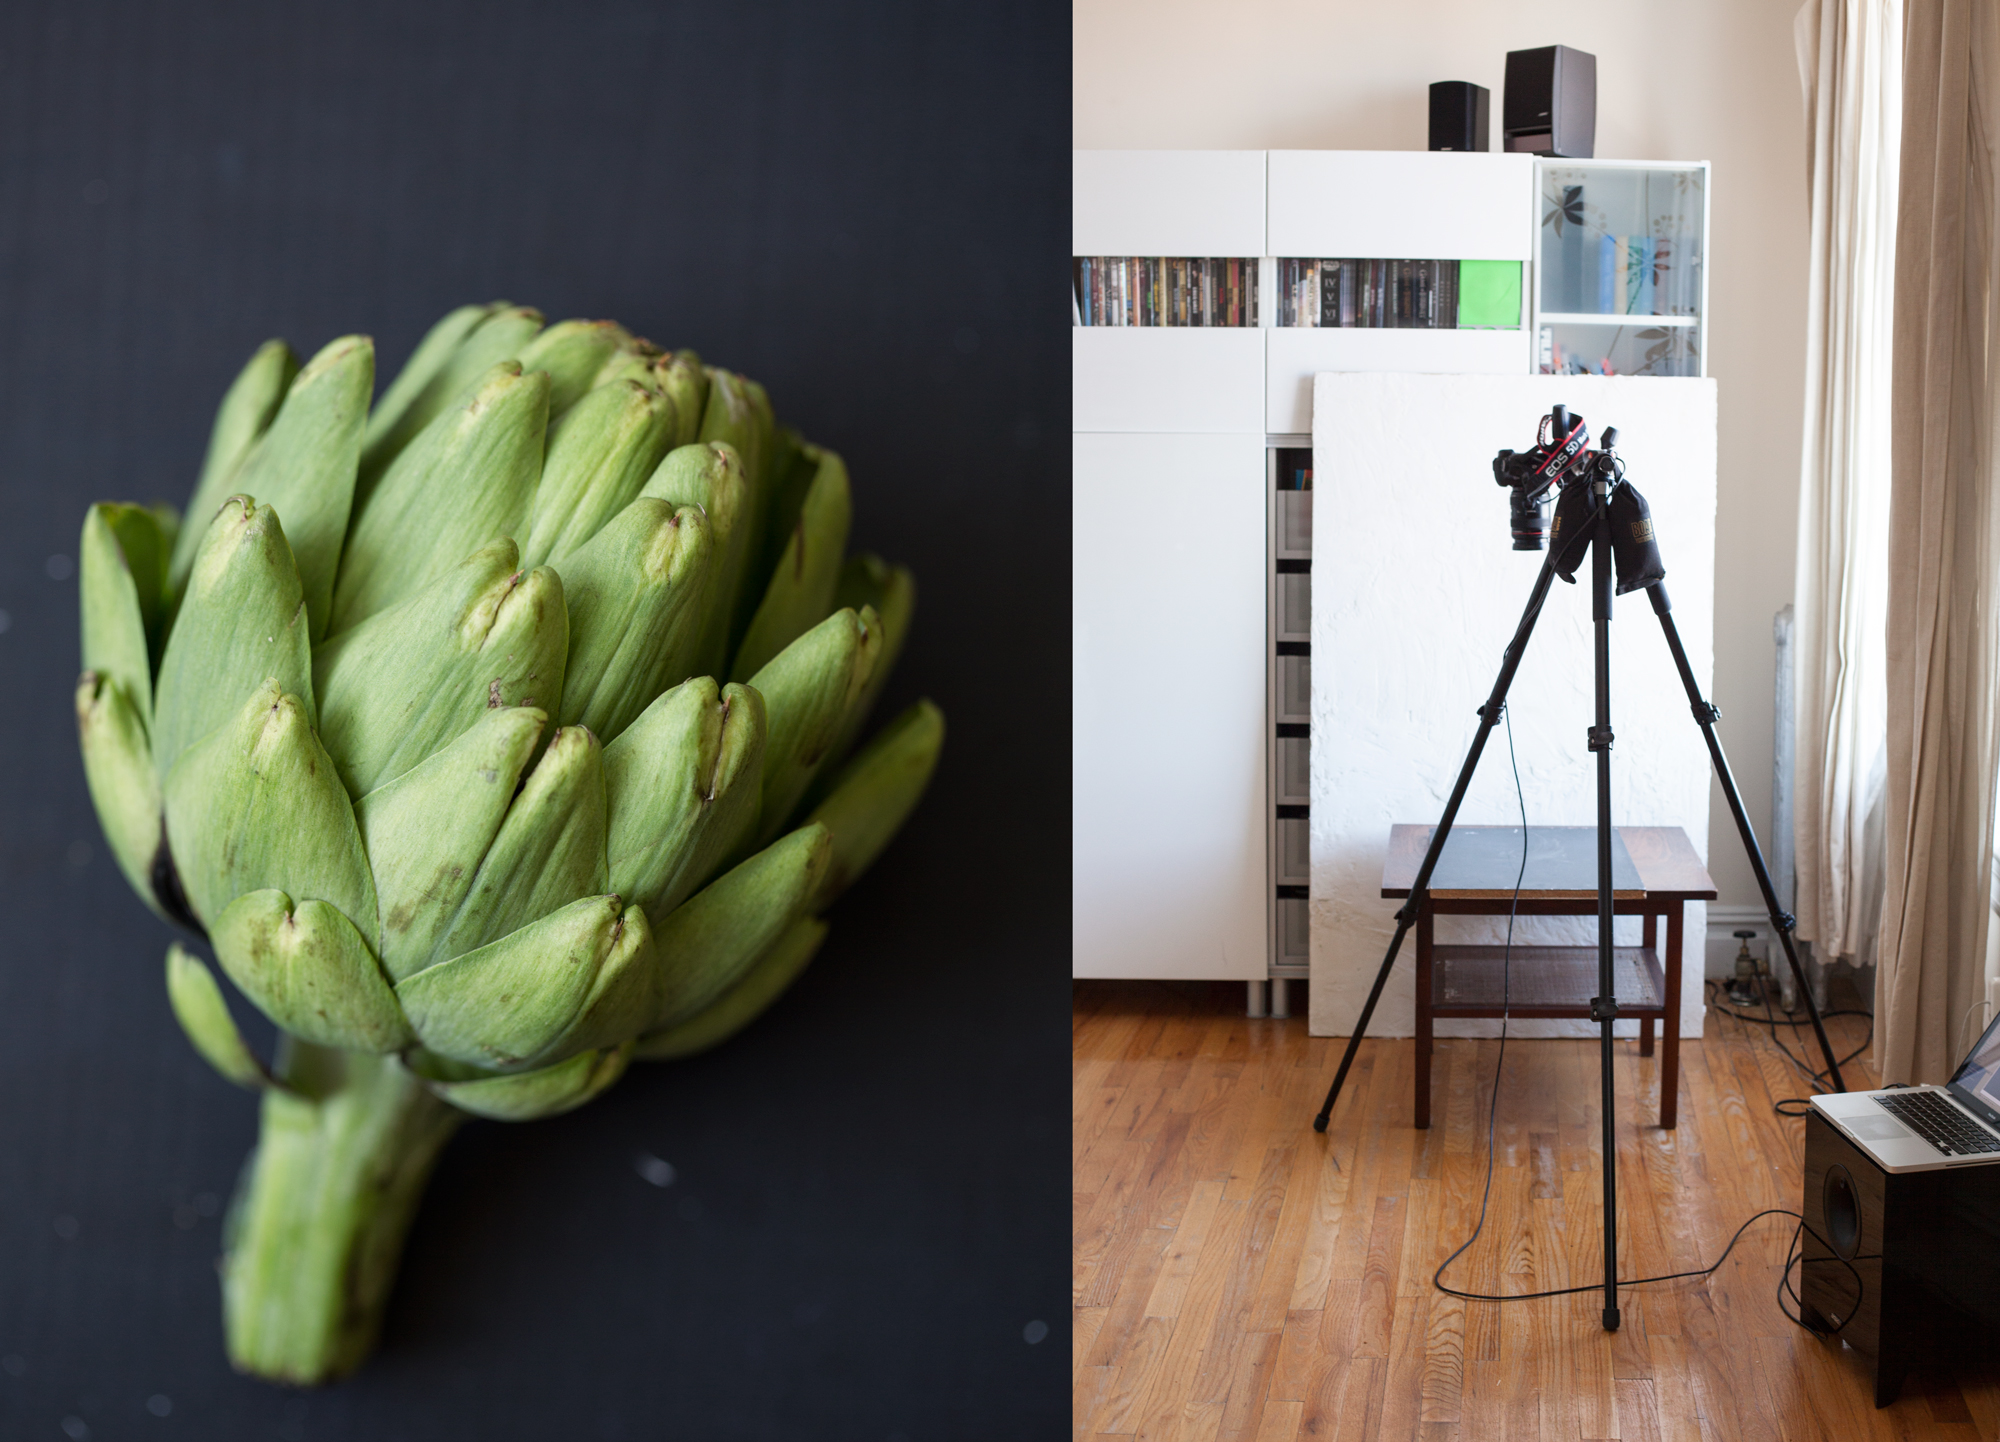 Evi-Abeler-Photography-how-to-photograph-artichoke.jpg